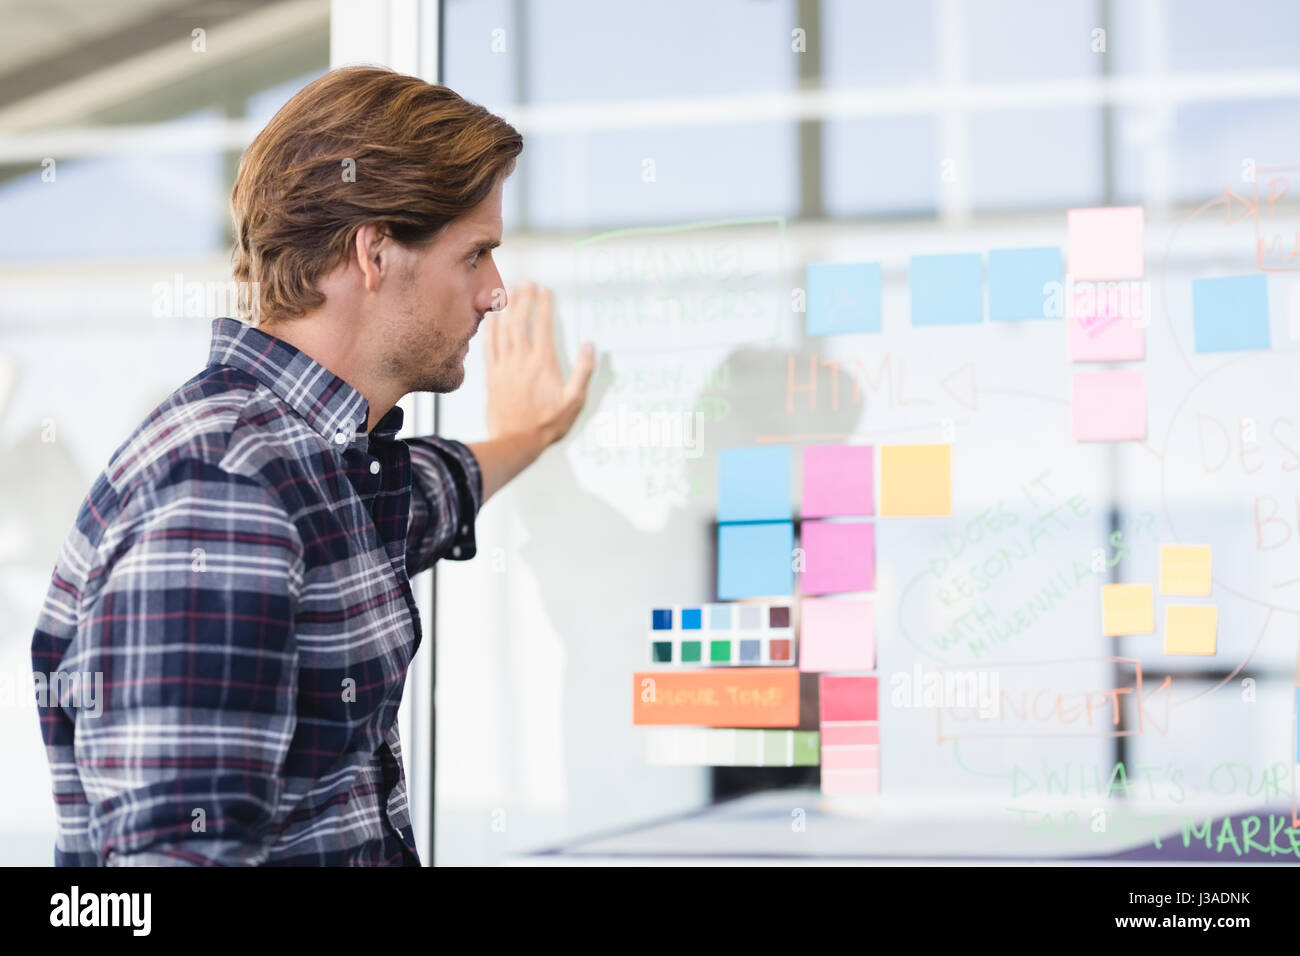 Businessman looking at plan on glass wall in office - Stock Image